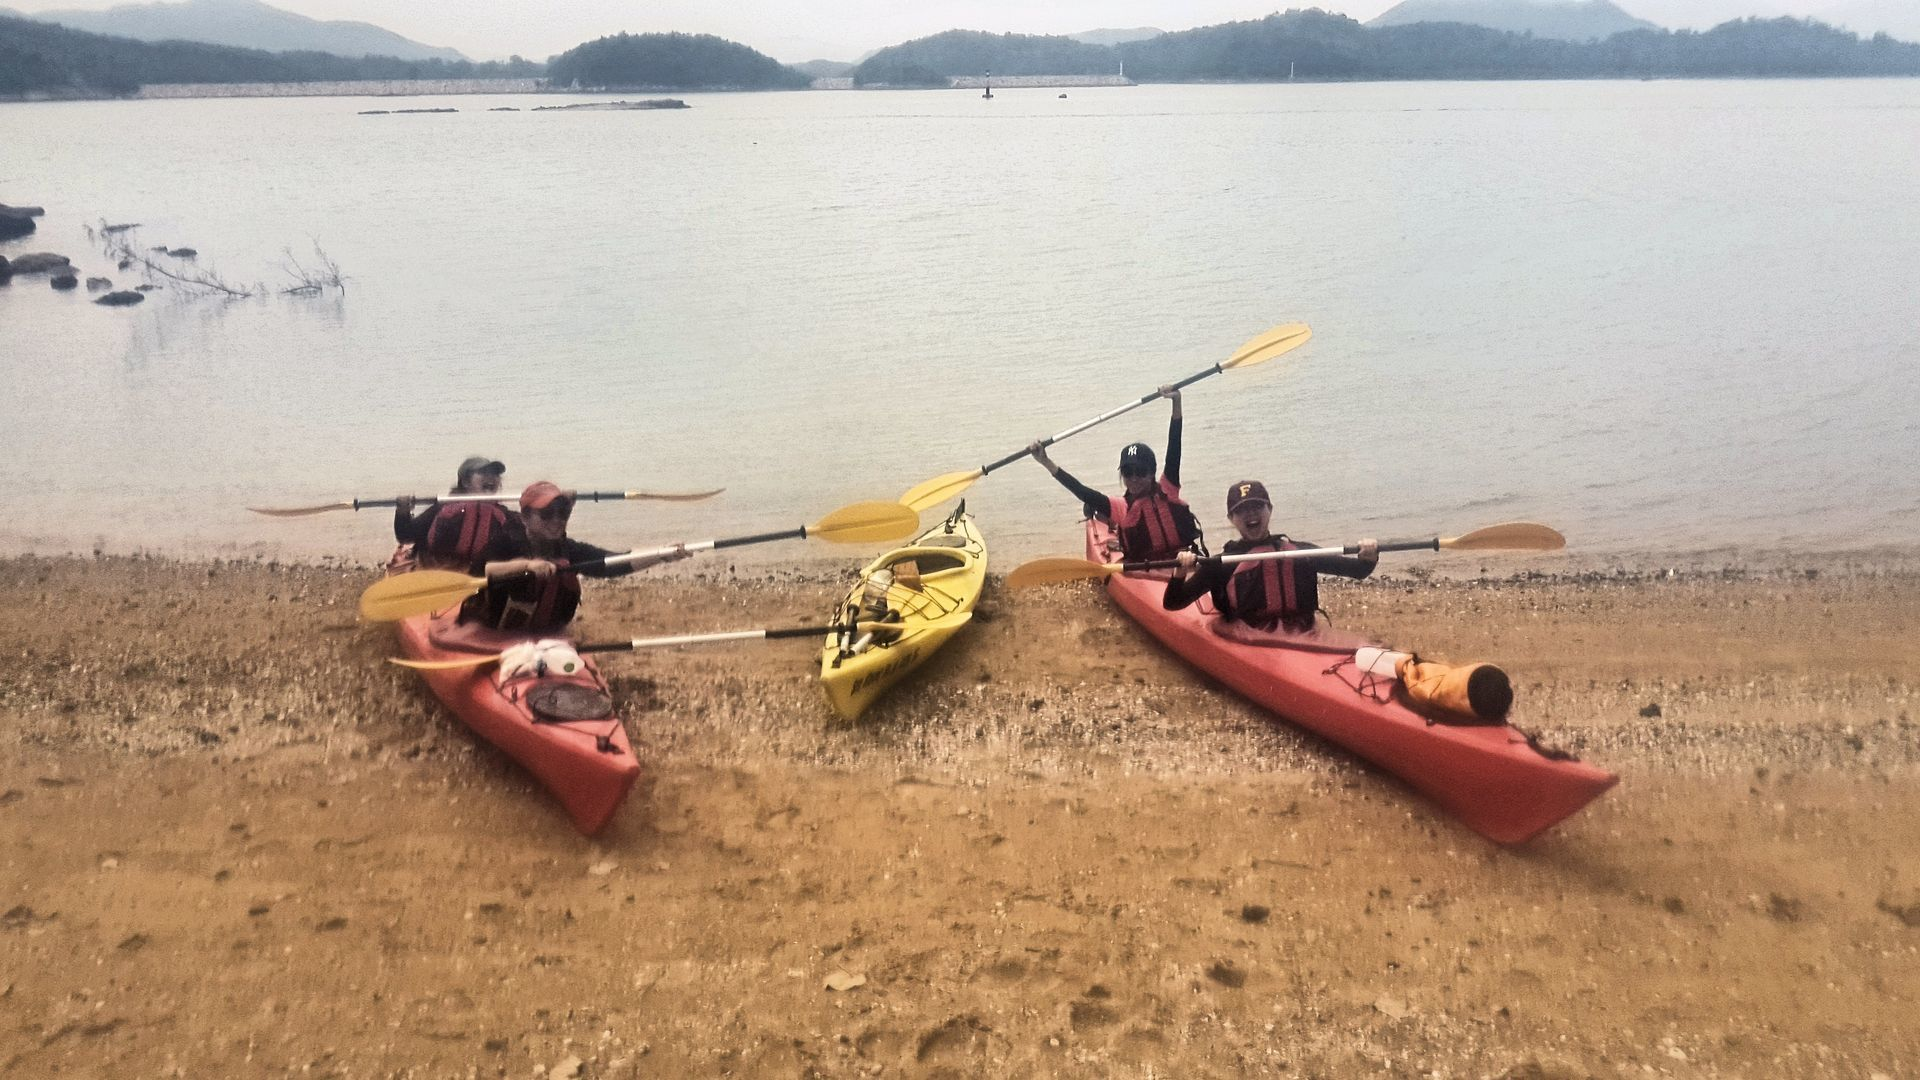 10 Jan 2019 UNESCO Geopark Sea Kayak Hong Kong